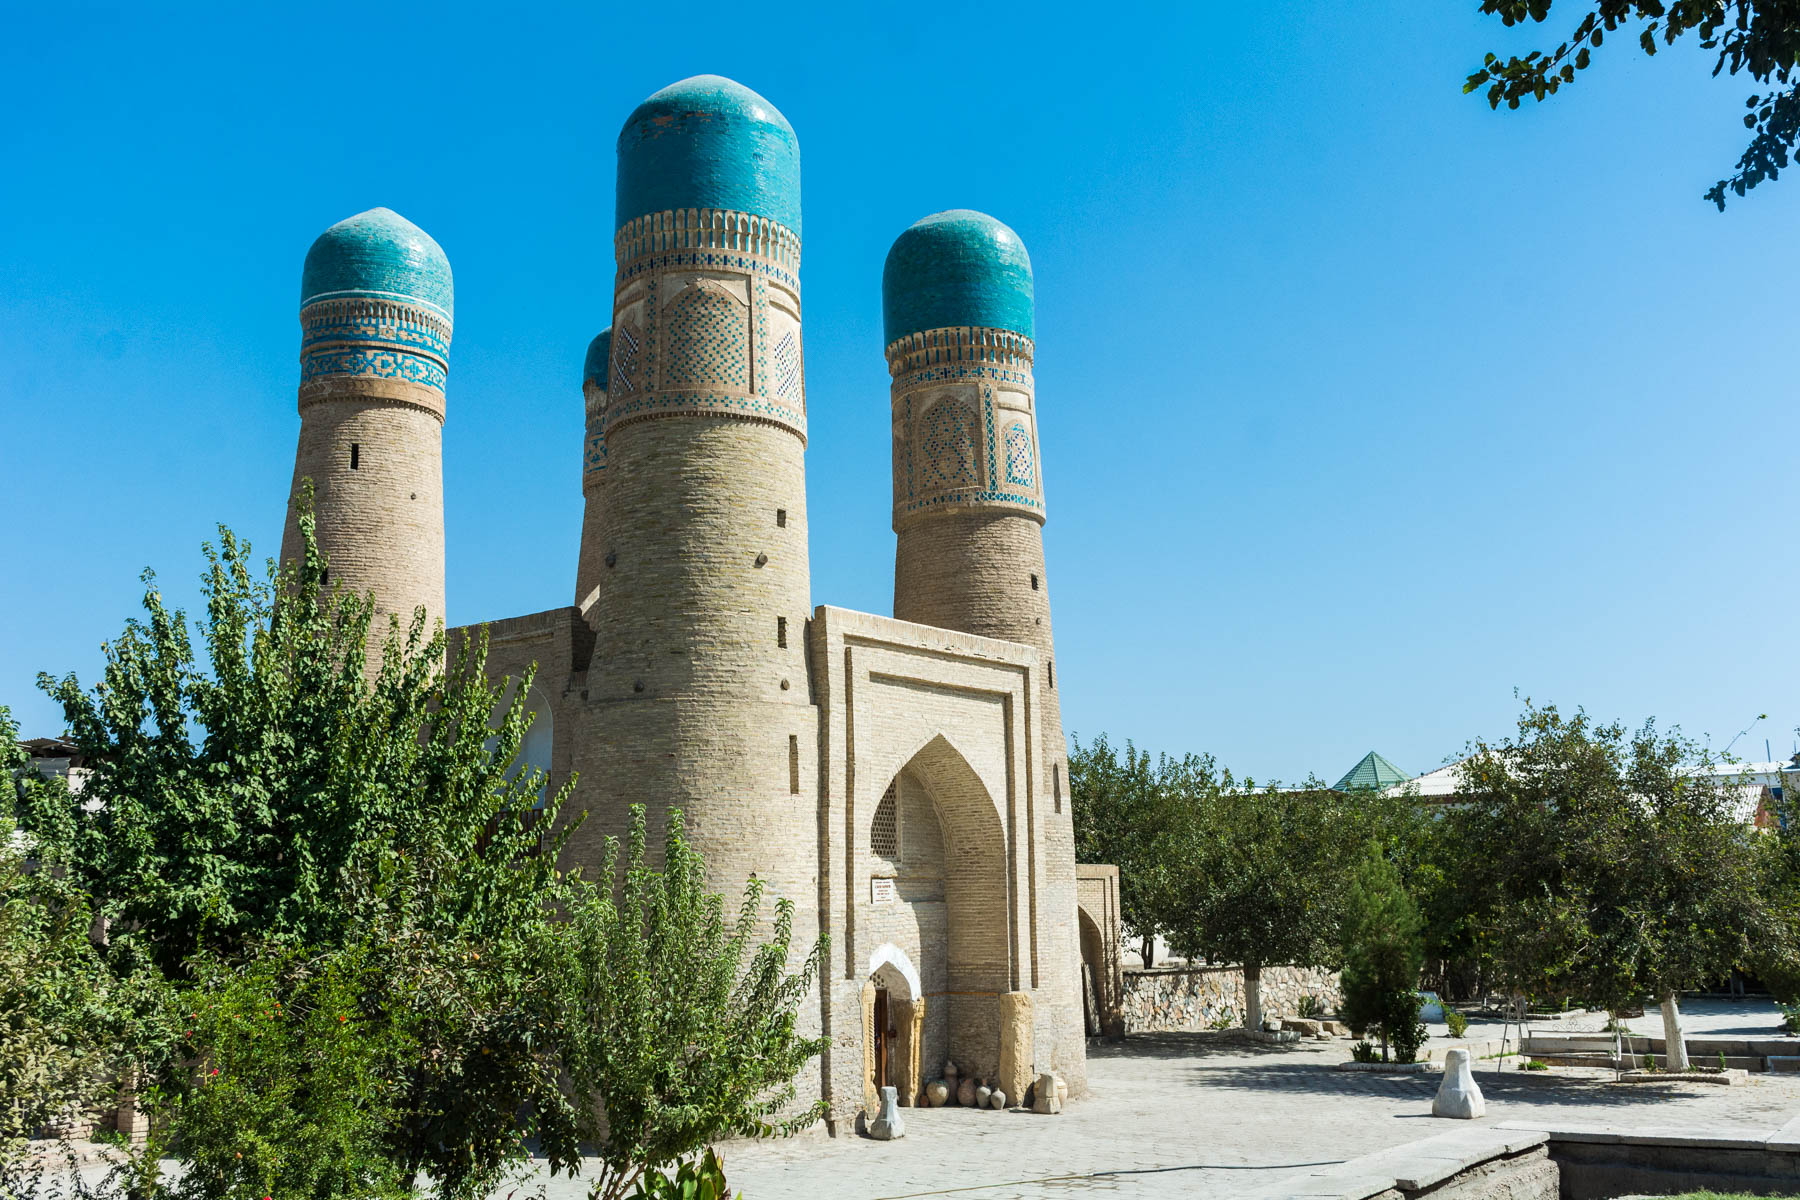 The small Chor Minor mosque in Bukhara